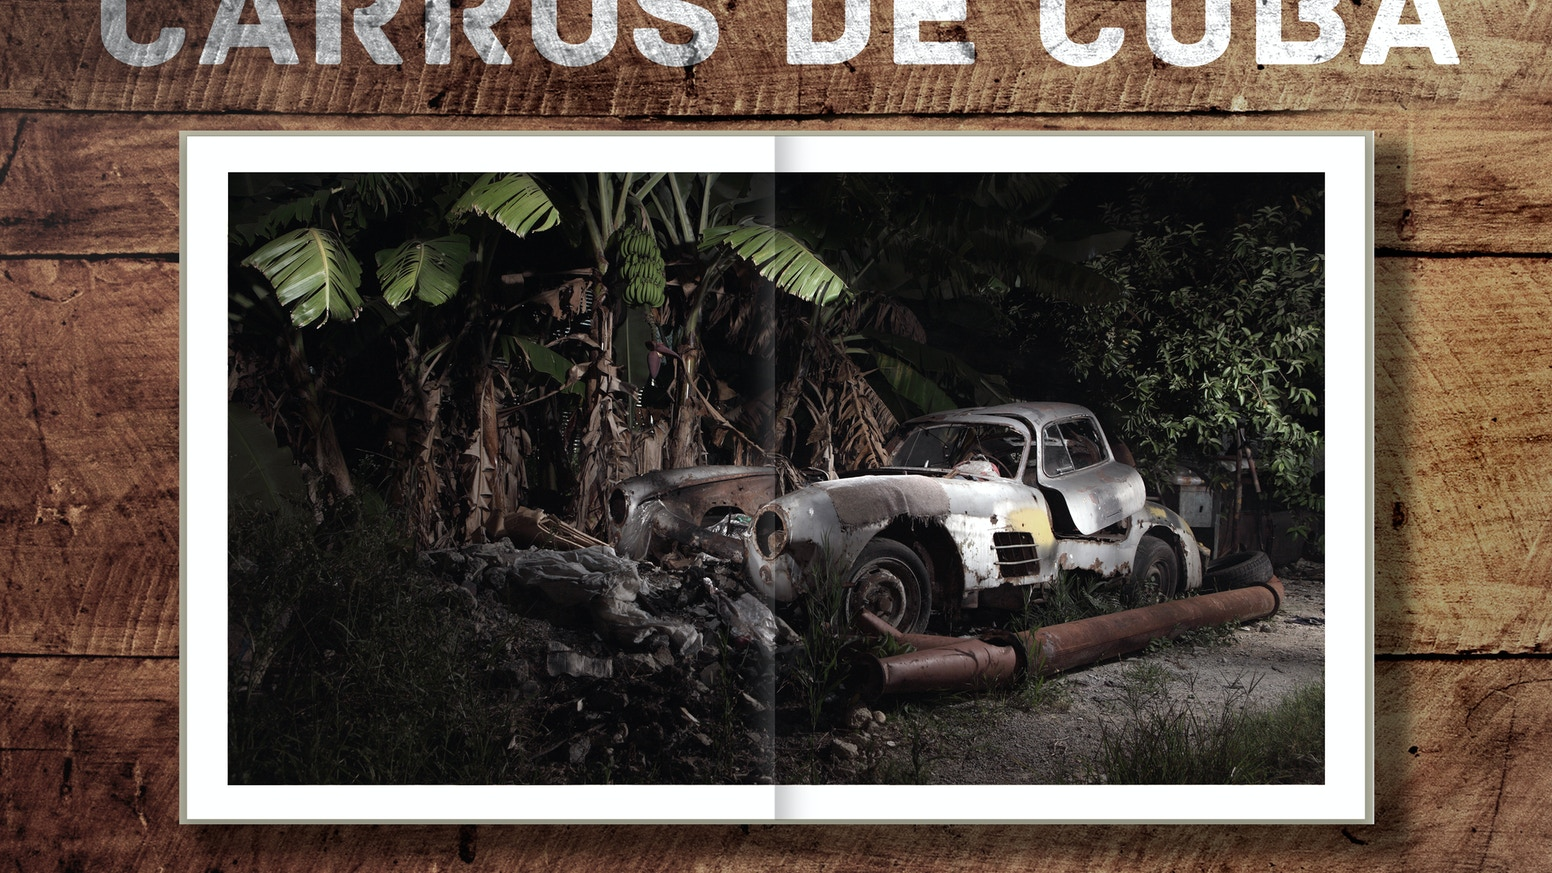 Coffee table book of the highly anticipated 'Carros de Cuba' project by internationally awarded automotive photographer Piotr Degler.